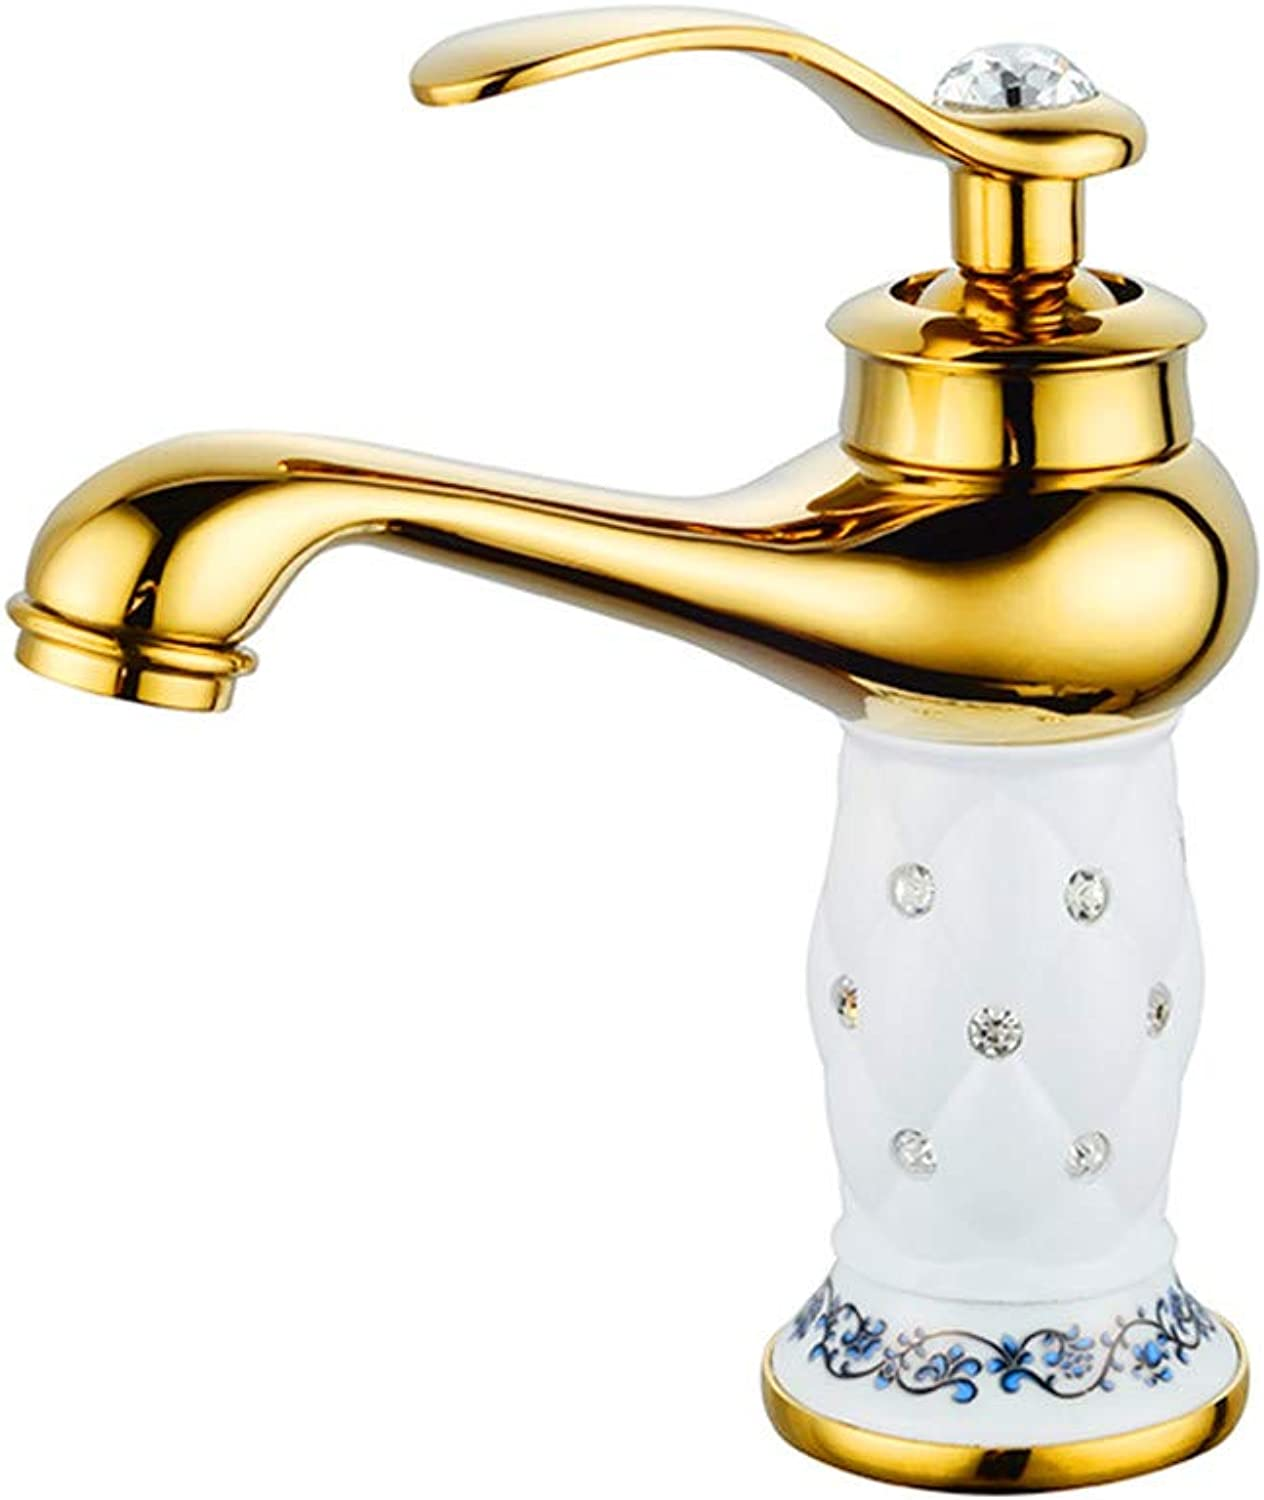 S-Senrohy Basin Faucets Luxury Euro gold With Diamond Brass Made Bathroom Faucet Mixer Tap DZLT-88881GW2